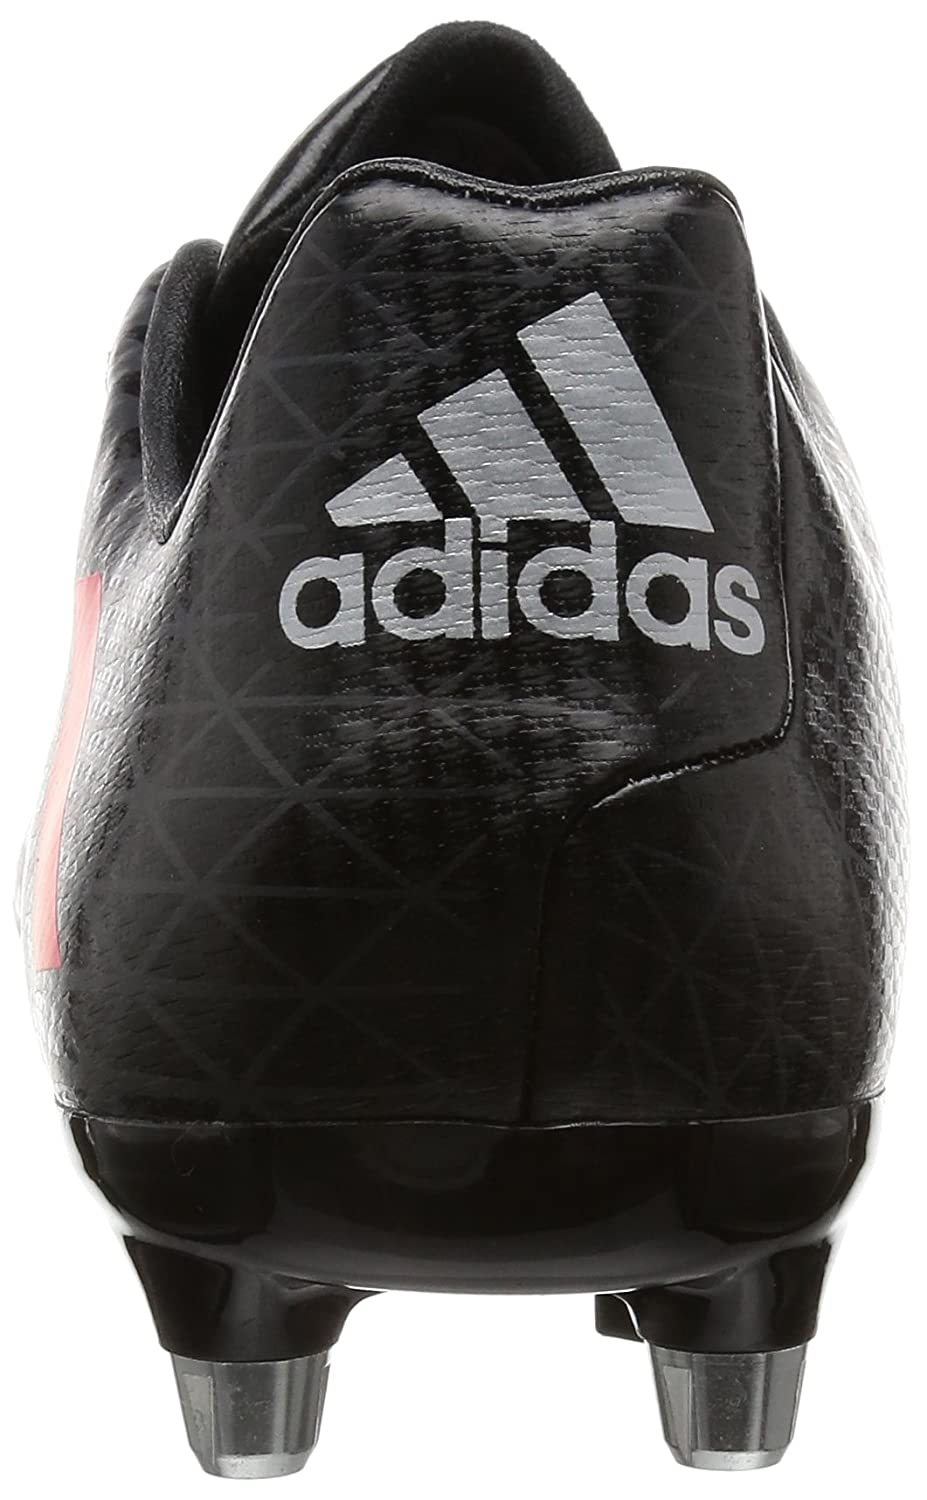 ... adidas Mens Malice Sg Rugby Boots Amazon.co.uk Shoes Bags Adidas SS15  Predator ... 9607fc77c4485